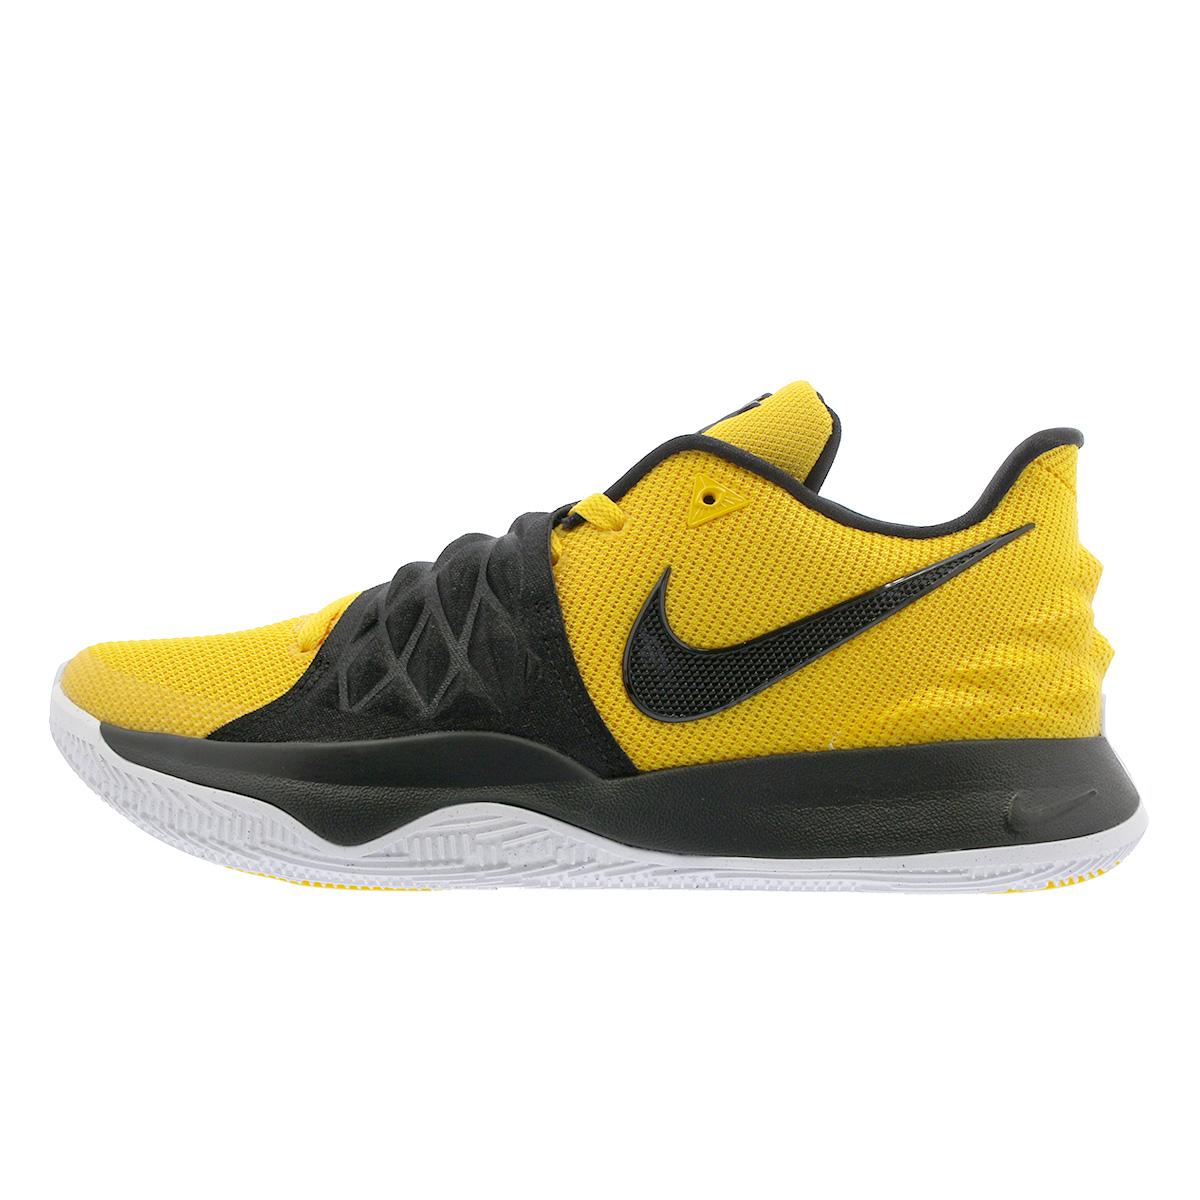 f2507e6a34a LOWTEX PLUS  NIKE KYRIE 4 LOW Nike chi Lee 4 low AMARILLO BLACK ...